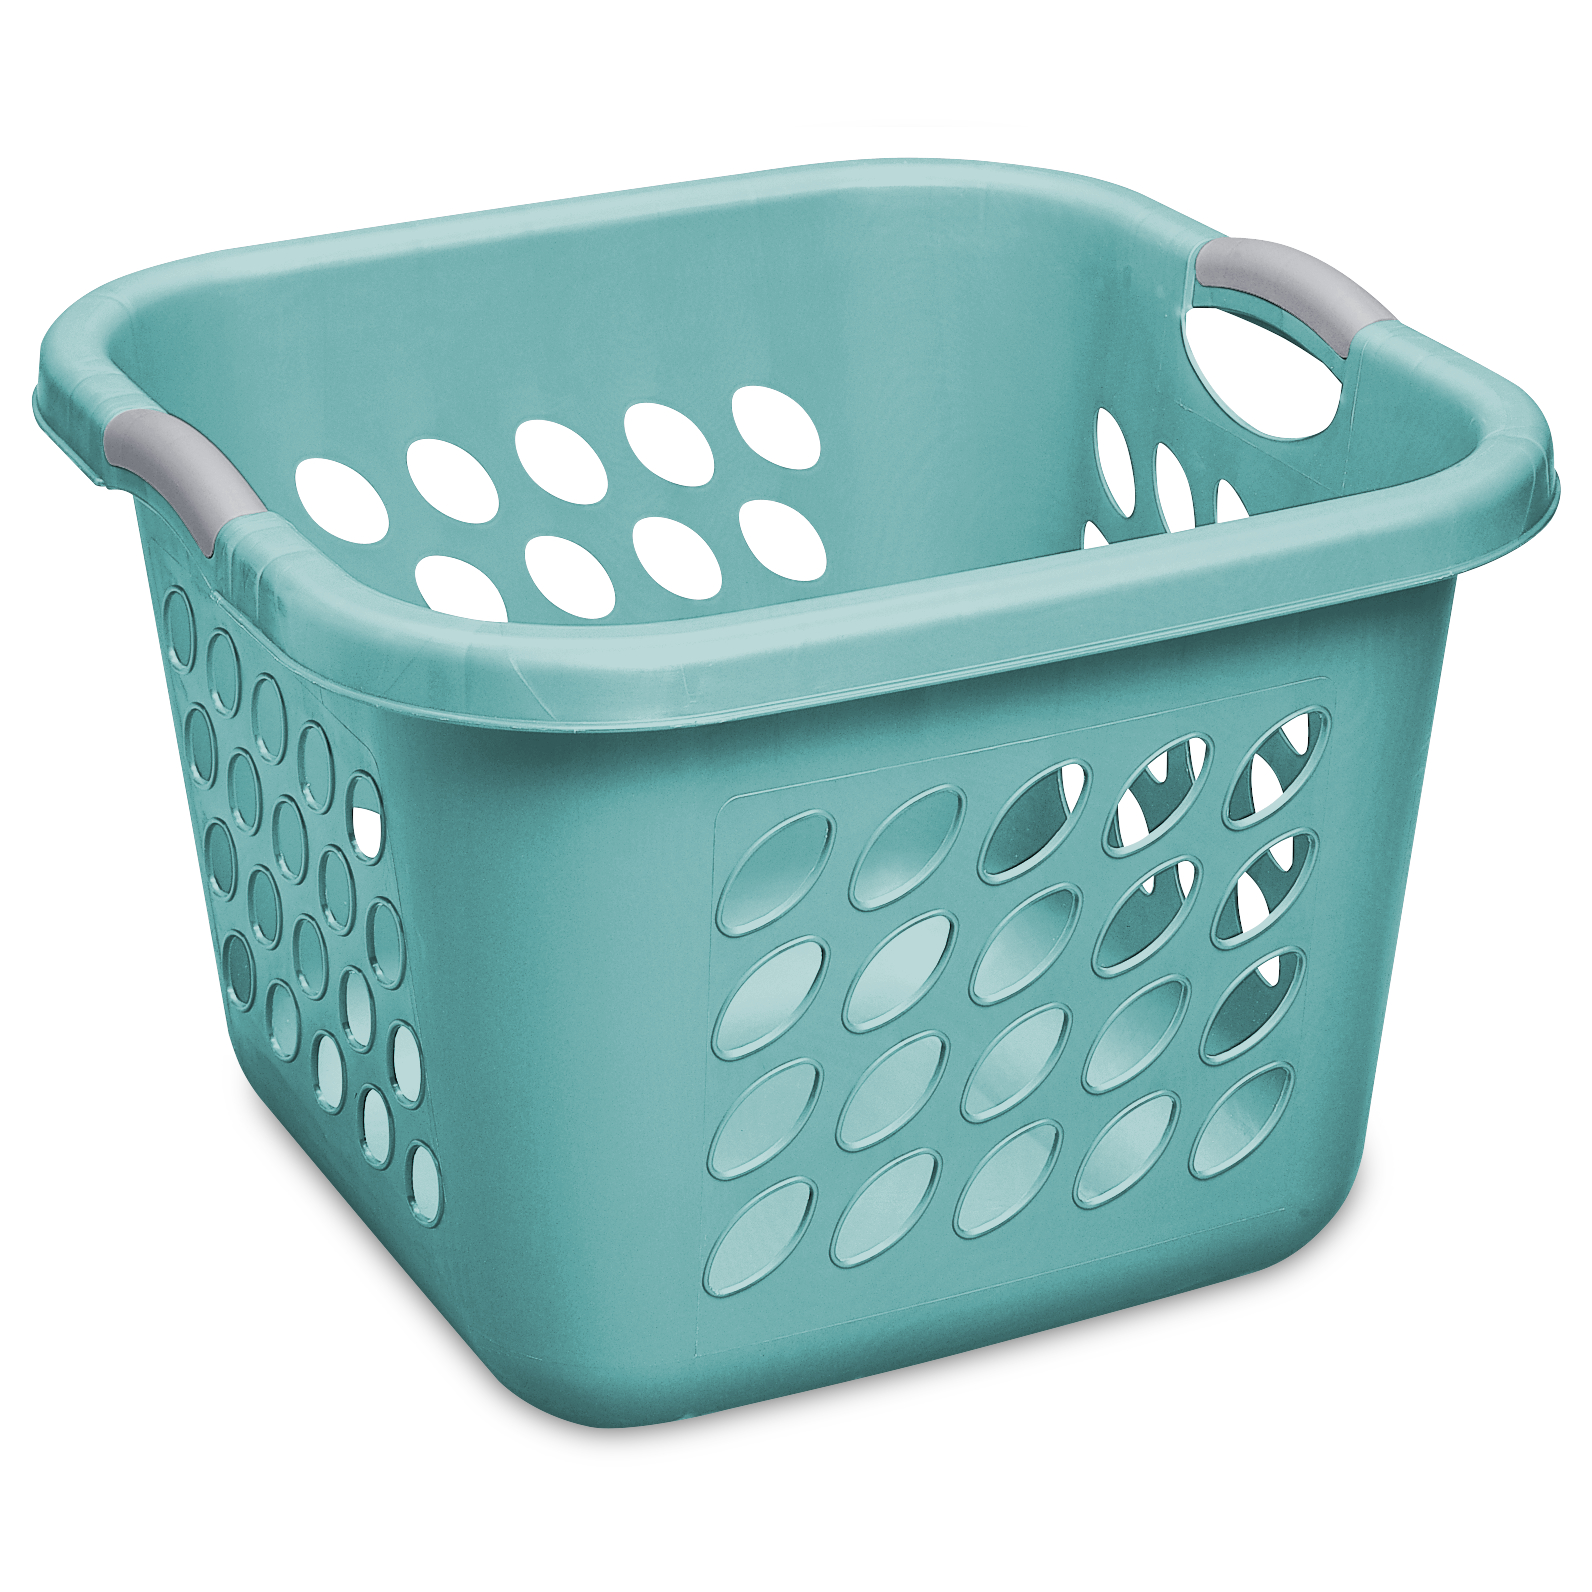 Sterilite 1.5 Bushel/53 L Ultra™ Square Laundry Basket, Teal Splash